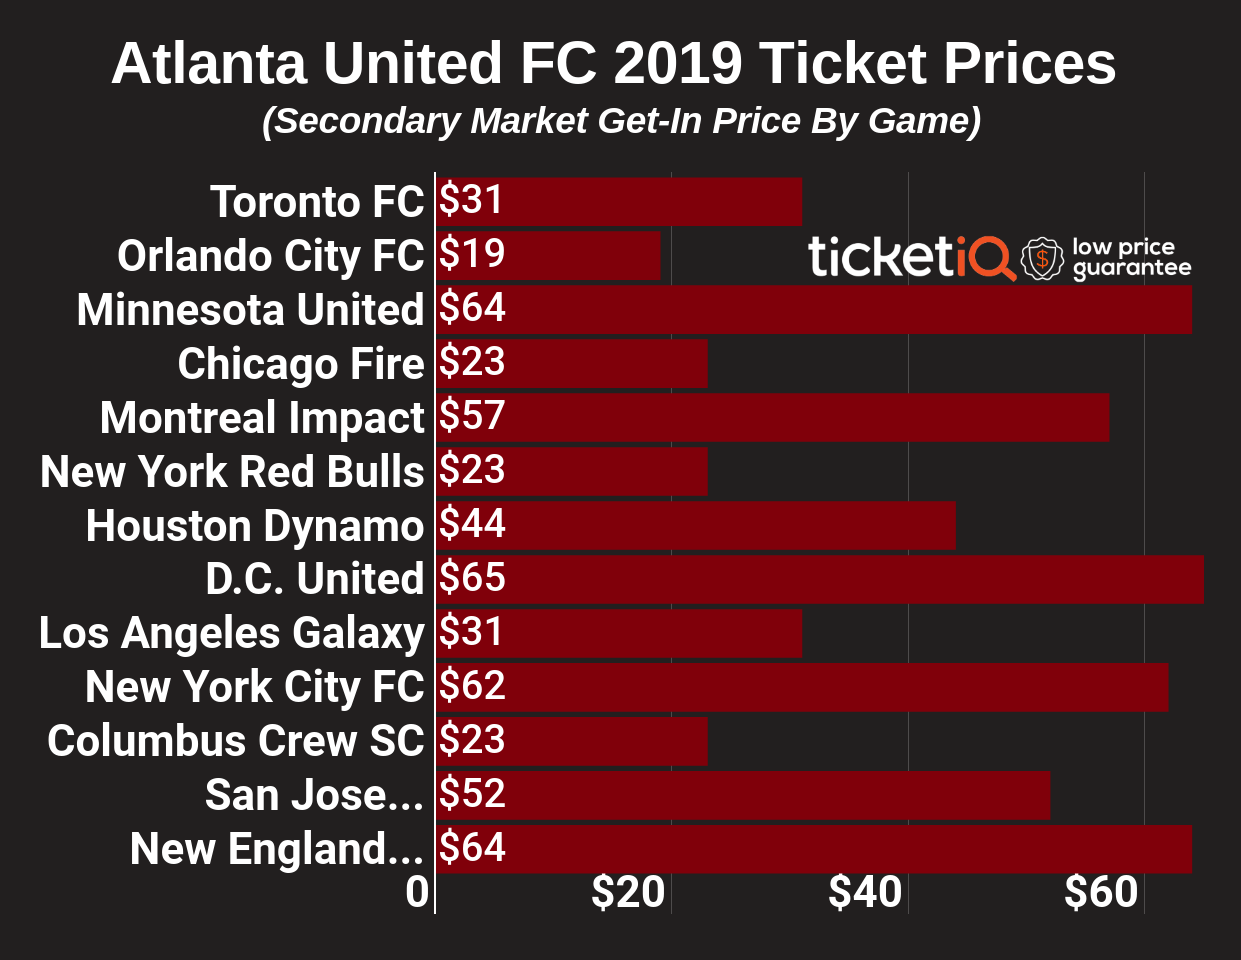 Where to Find Cheapest Atlanta United FC Ticket Prices For